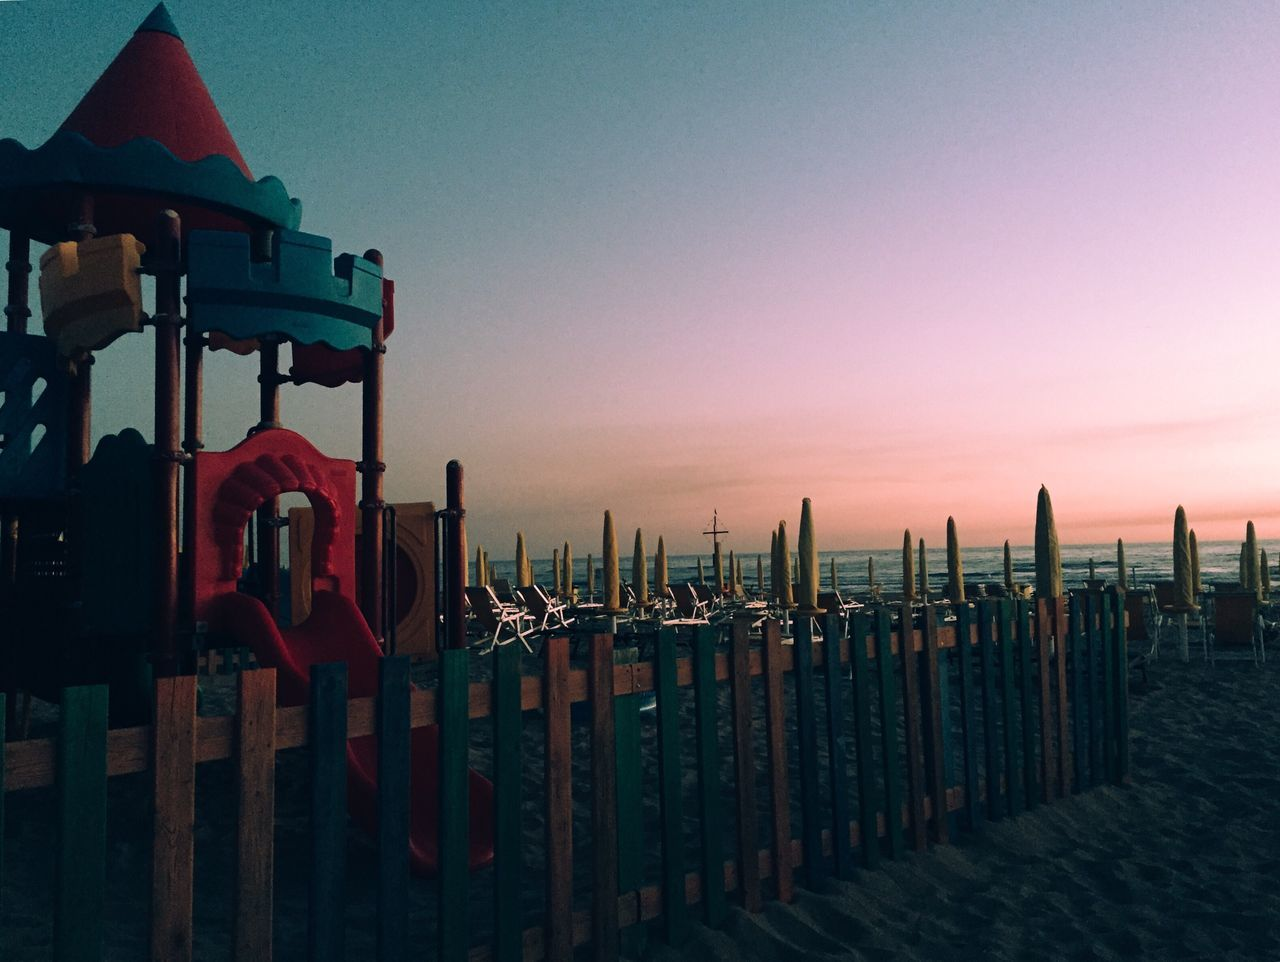 Almost night, by Claudia Ioan Sky Sunset Tranquility Outdoors Sea Nature Beach No People Horizon Over Water Mobile Photography IPhoneography Iphone6 Travel Destinations Tranquil Scene Summer Landscape Playground